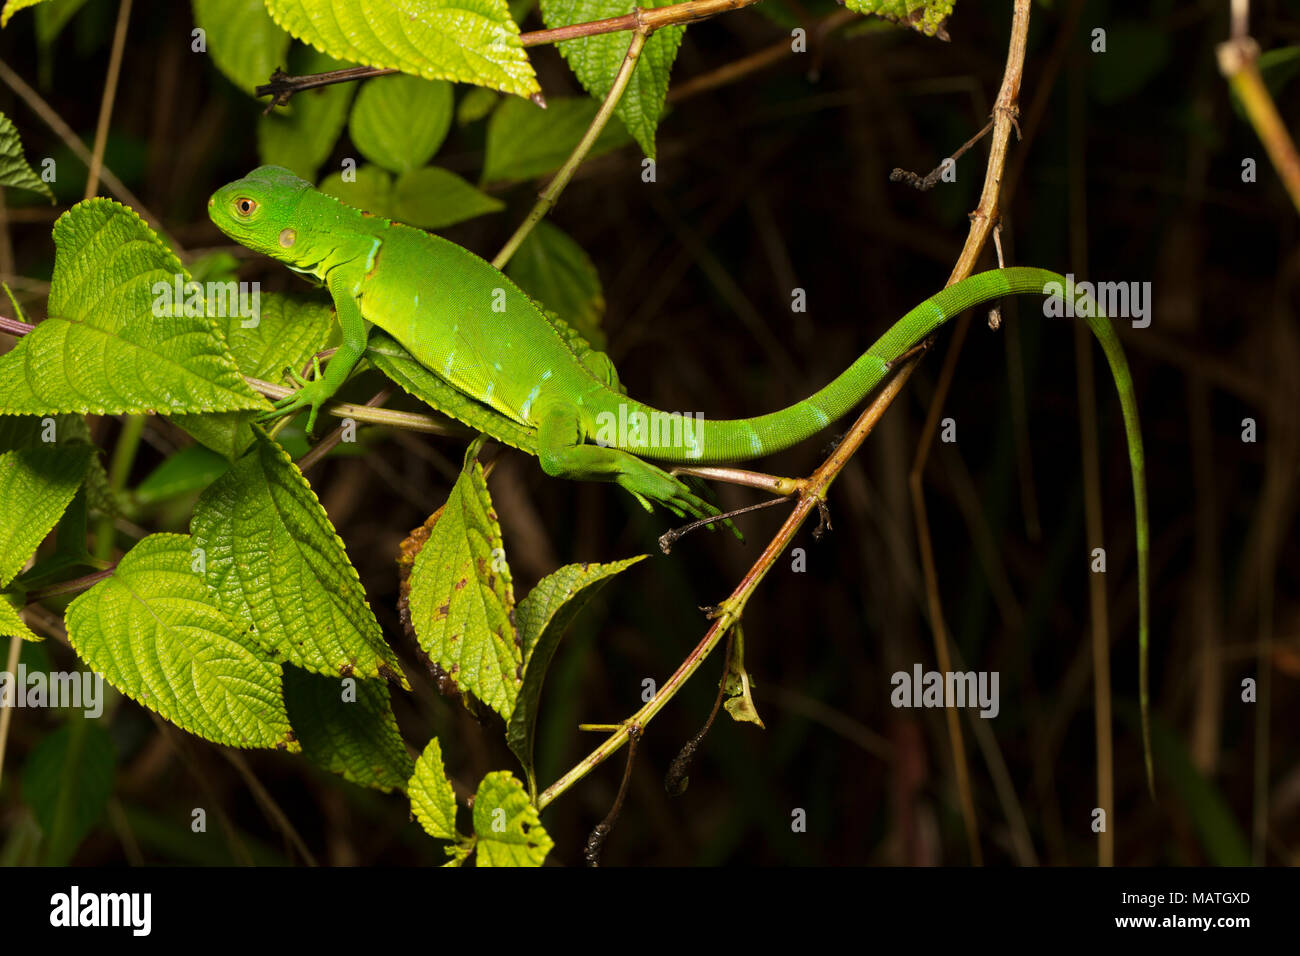 A juvenile green iguana, Iguana igunana, in the jungle of Suriname, near Bakhuis, South America - Stock Image